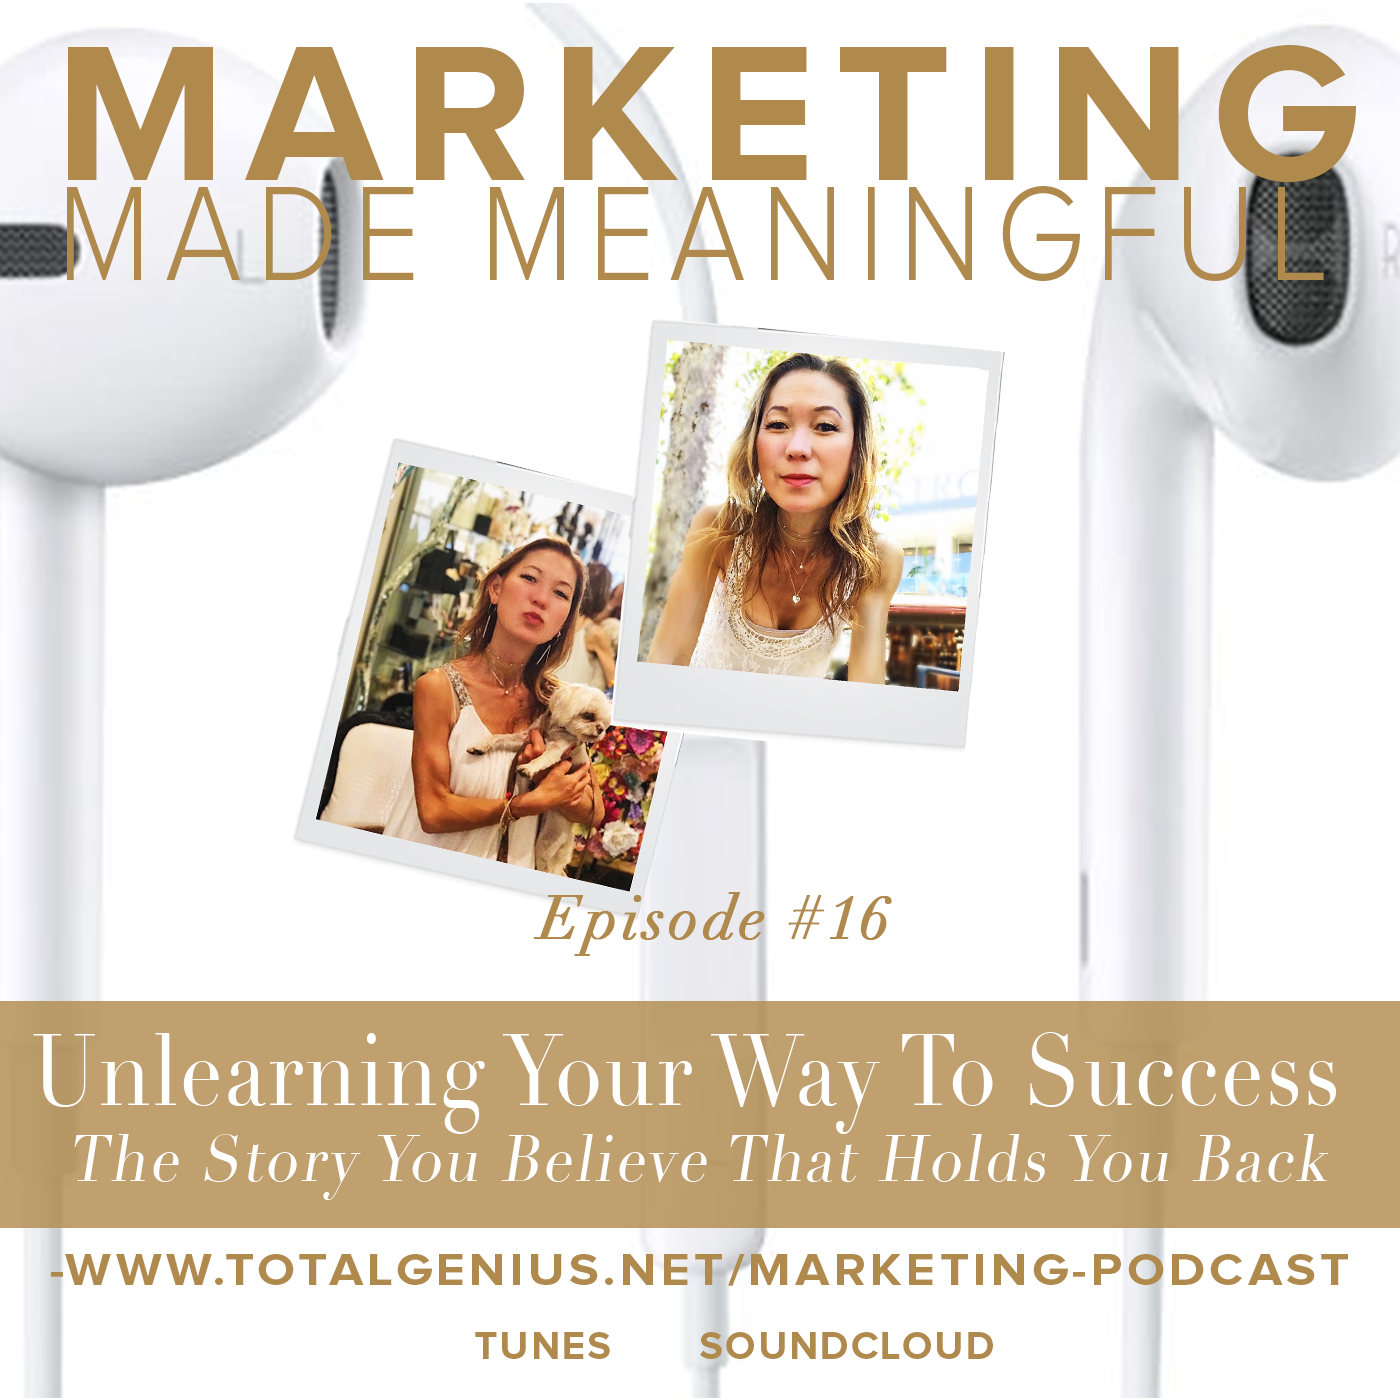 Marketing Made Meaningful #podcast #itunes #soundcloud #meaningfulmarketing